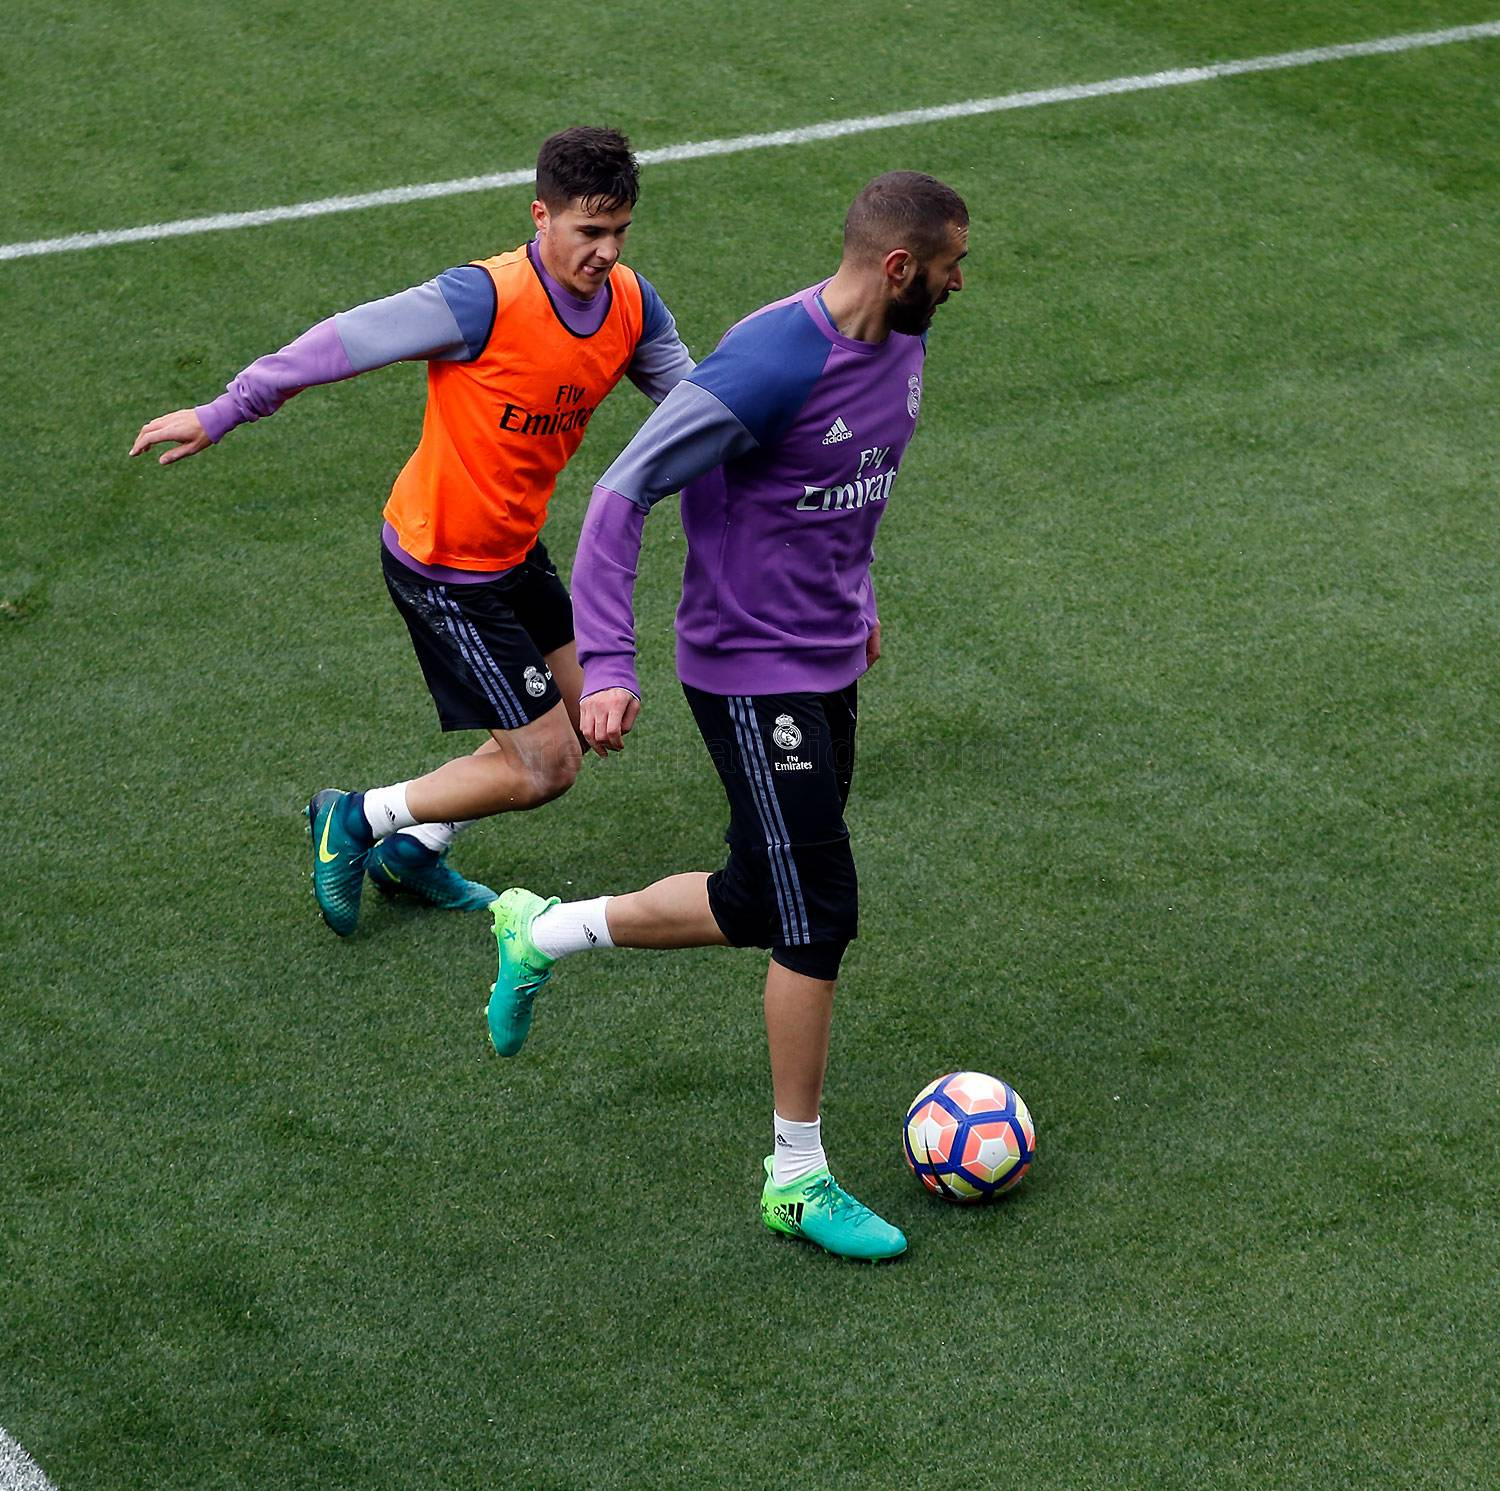 Real Madrid - Entrenamiento del Real Madrid - 23-03-2017